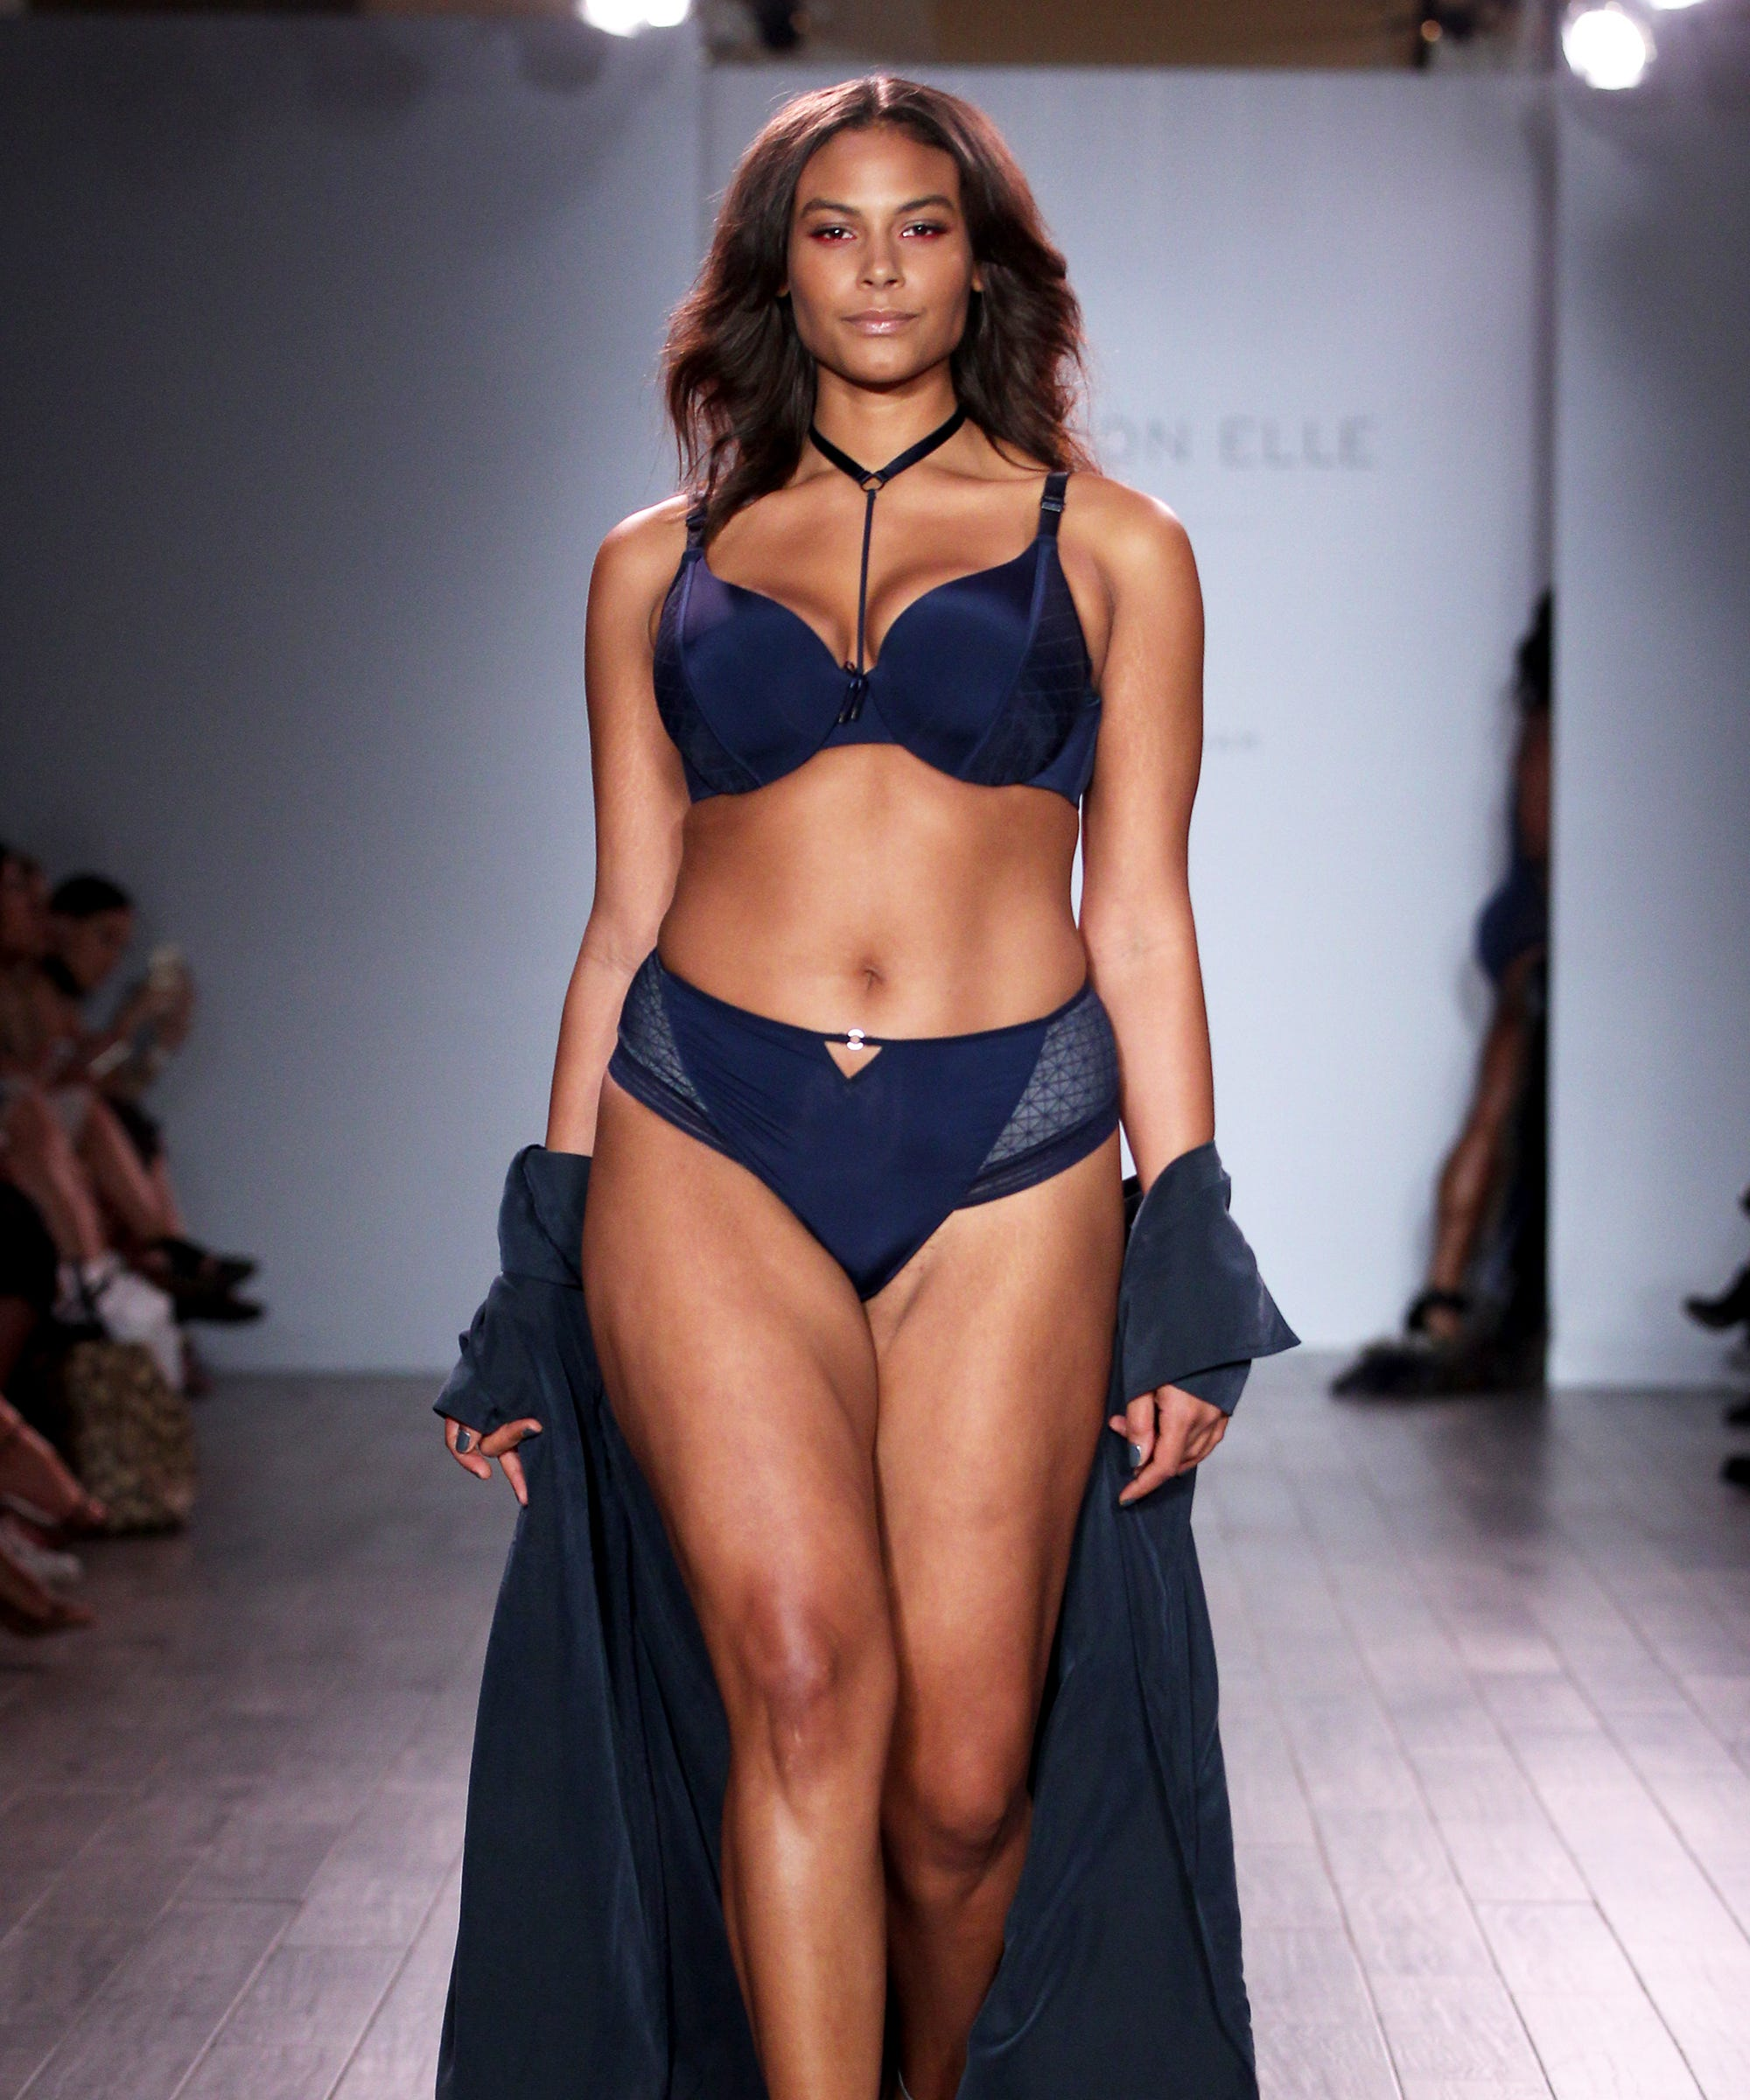 00f222f4119 This New York Fashion Week Was The Most Body-Positive Yet